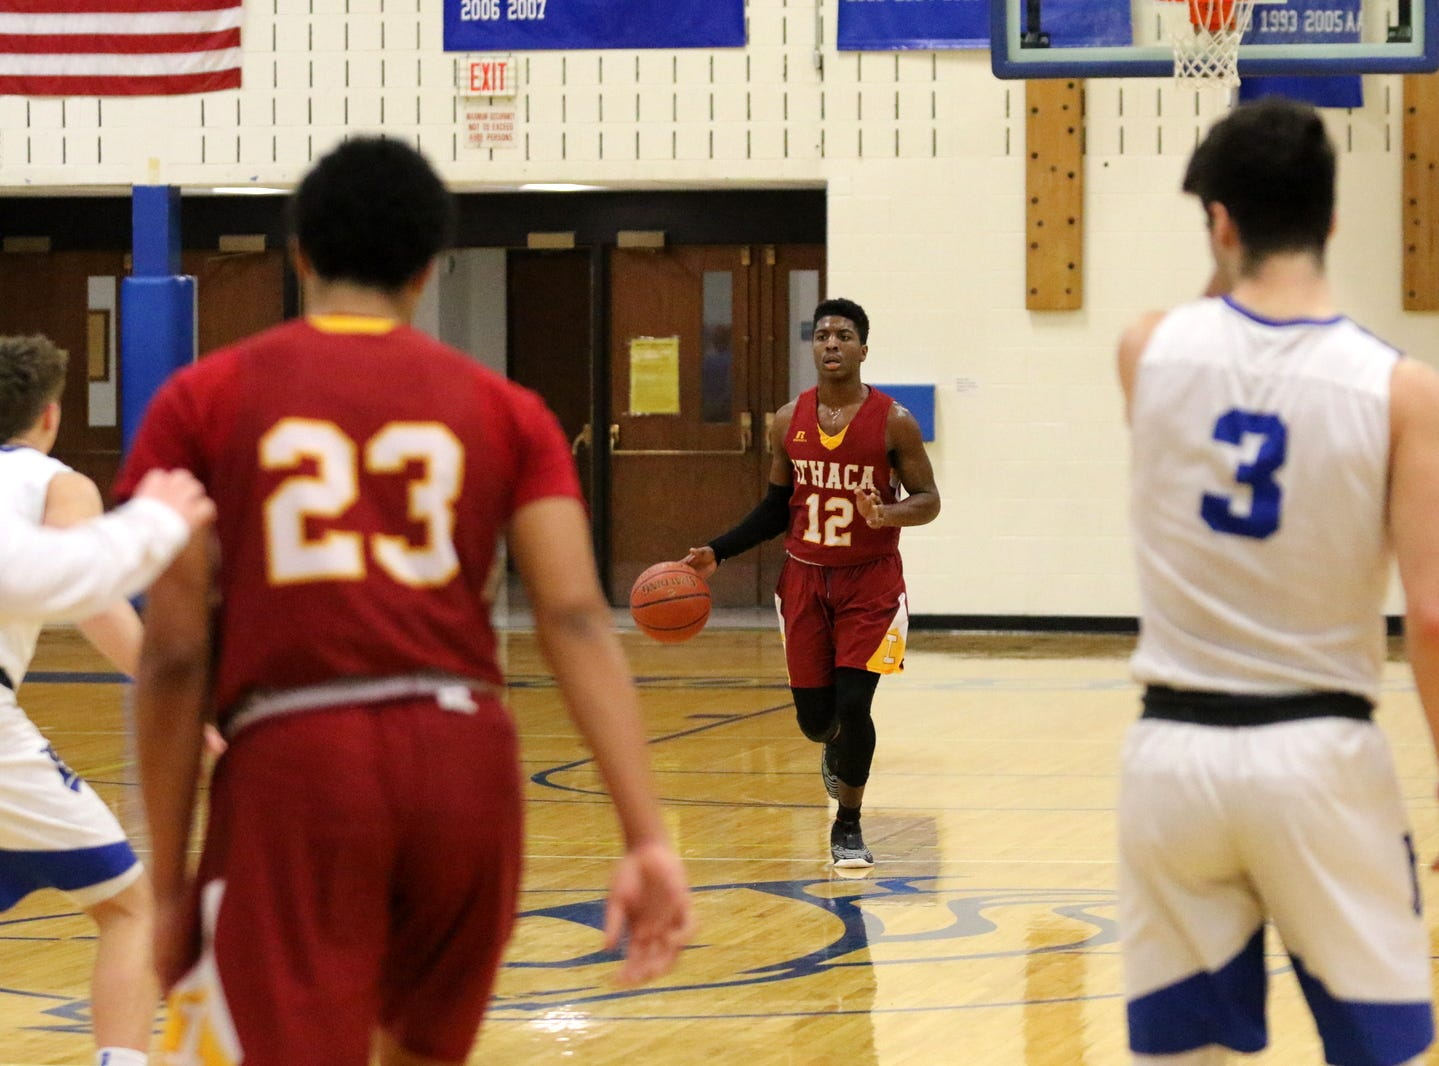 Action from Ithaca at Horseheads boys basketball Feb. 2, 2019 at Horseheads Middle School.